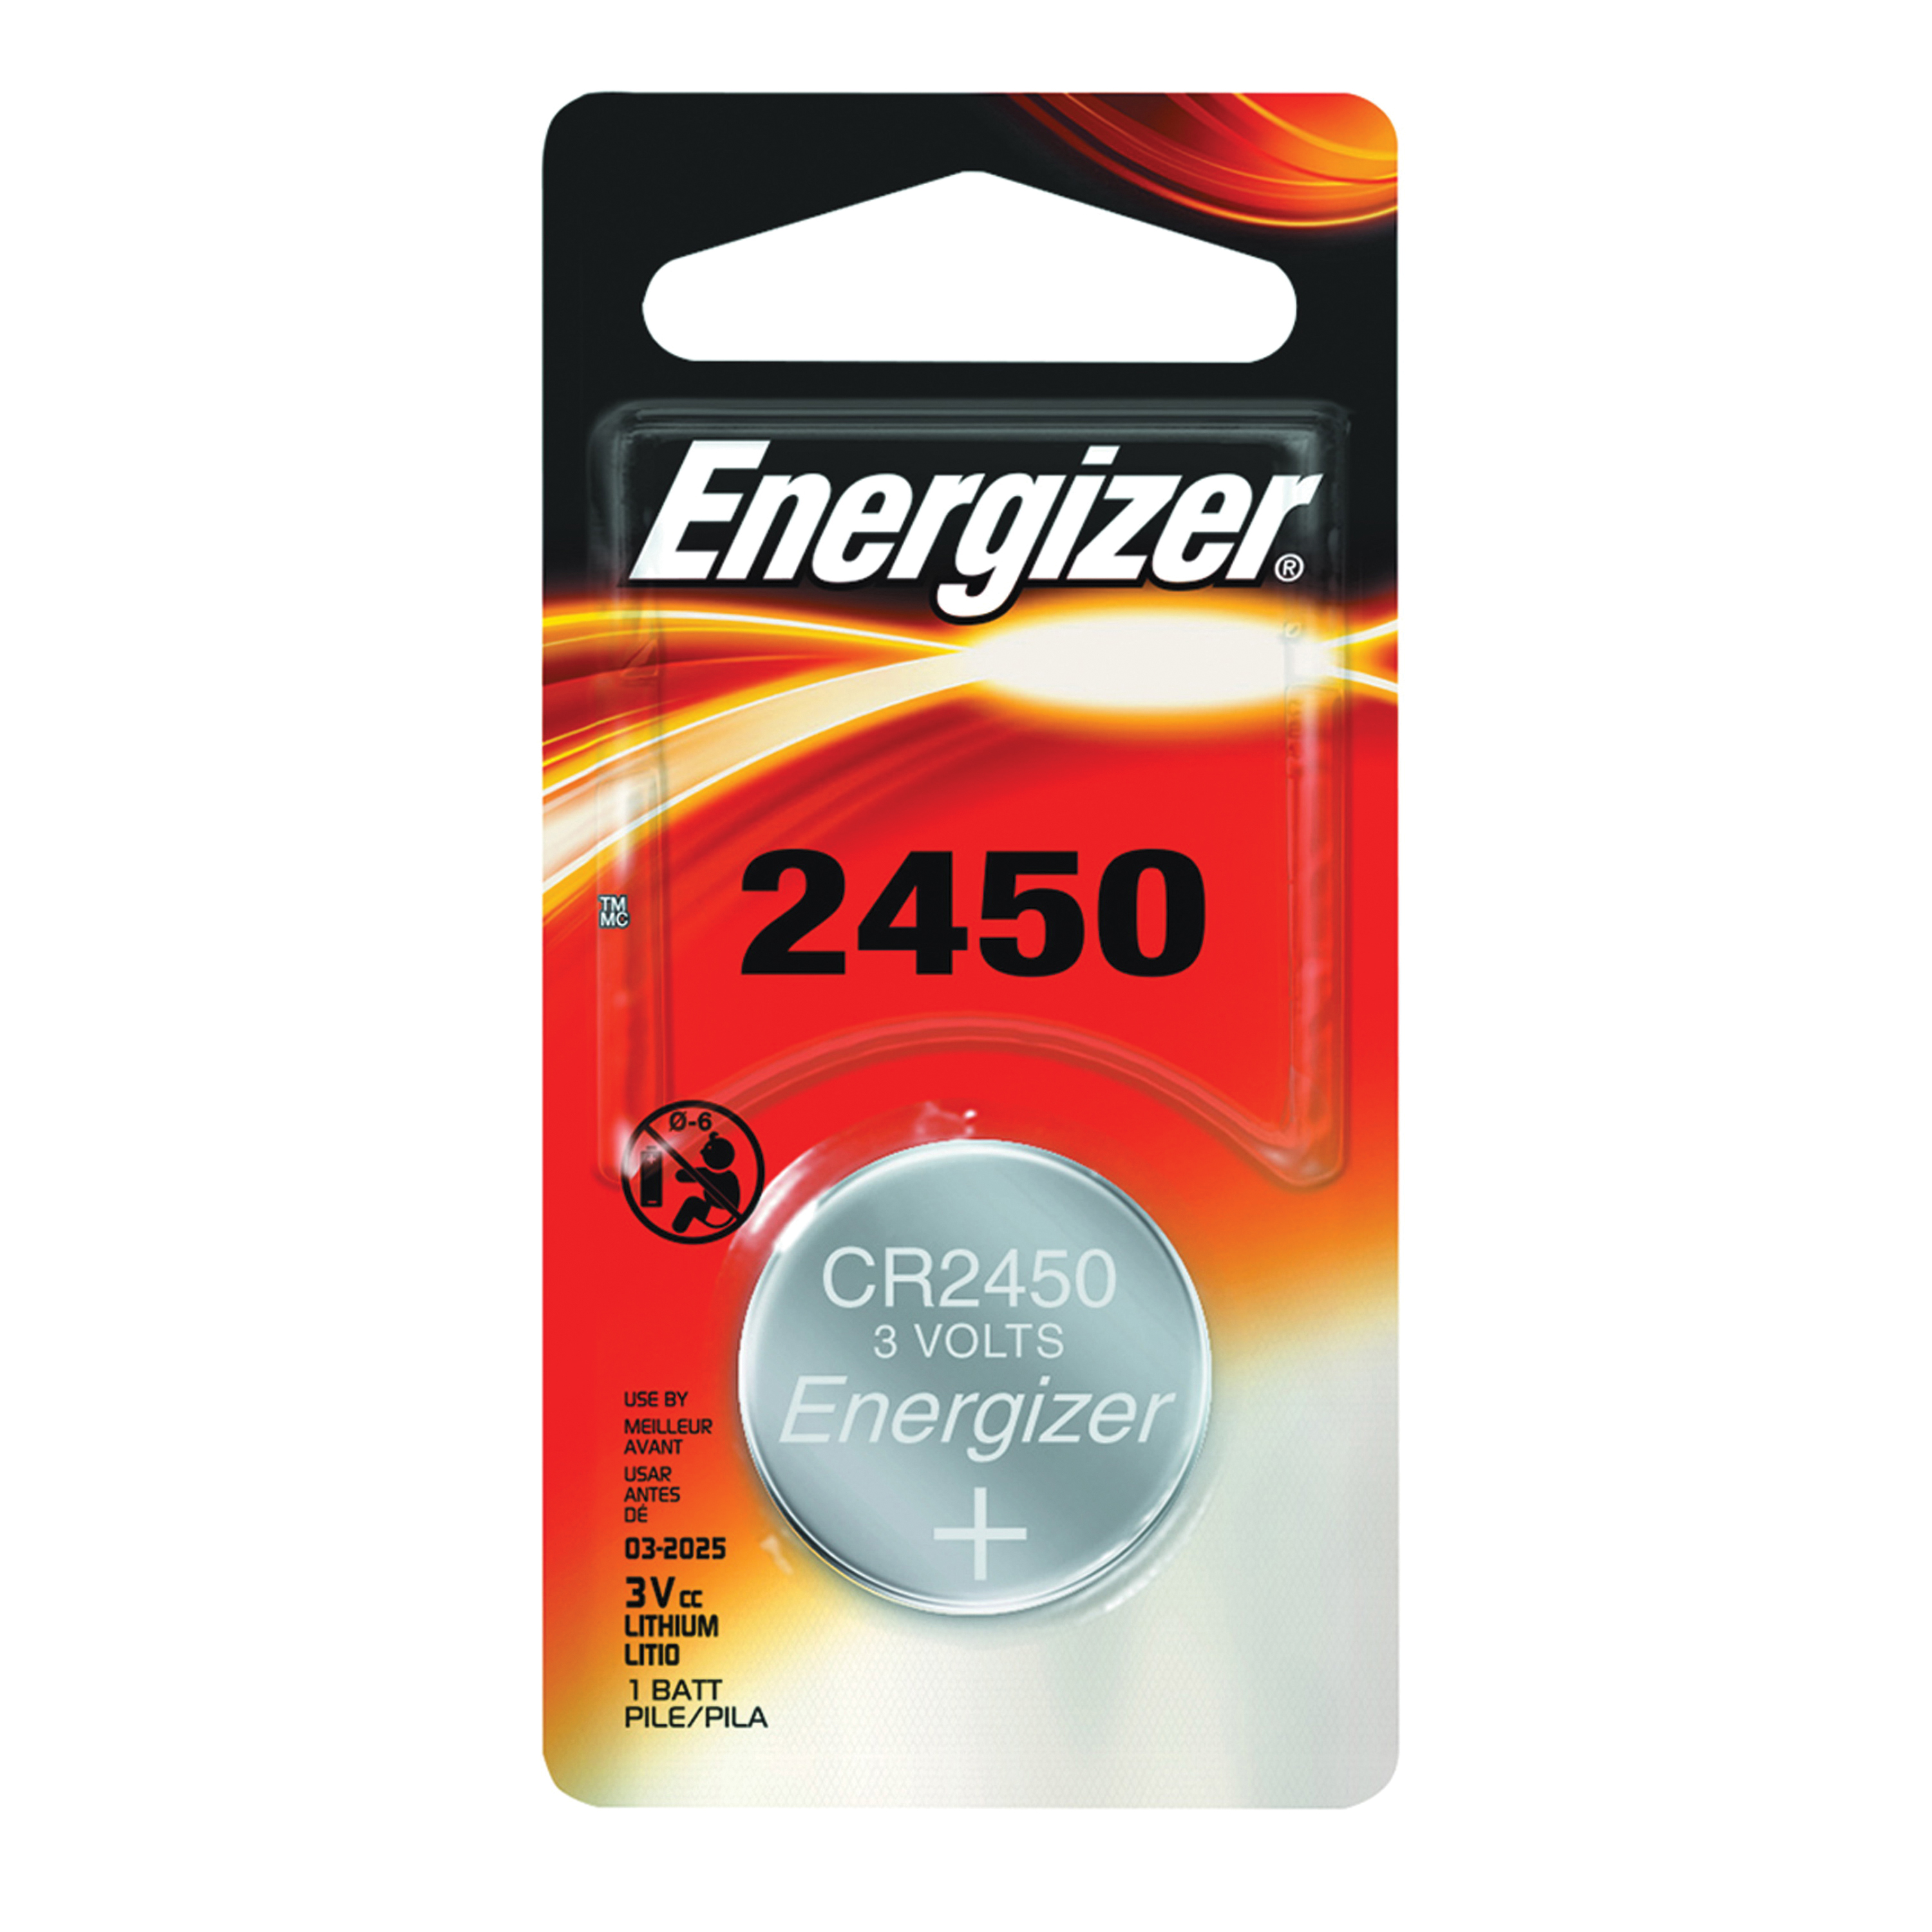 Picture of Energizer ECR2450BP Coin Cell Battery, 3 V Battery, 620 mAh, CR2450 Battery, Lithium, Manganese Dioxide